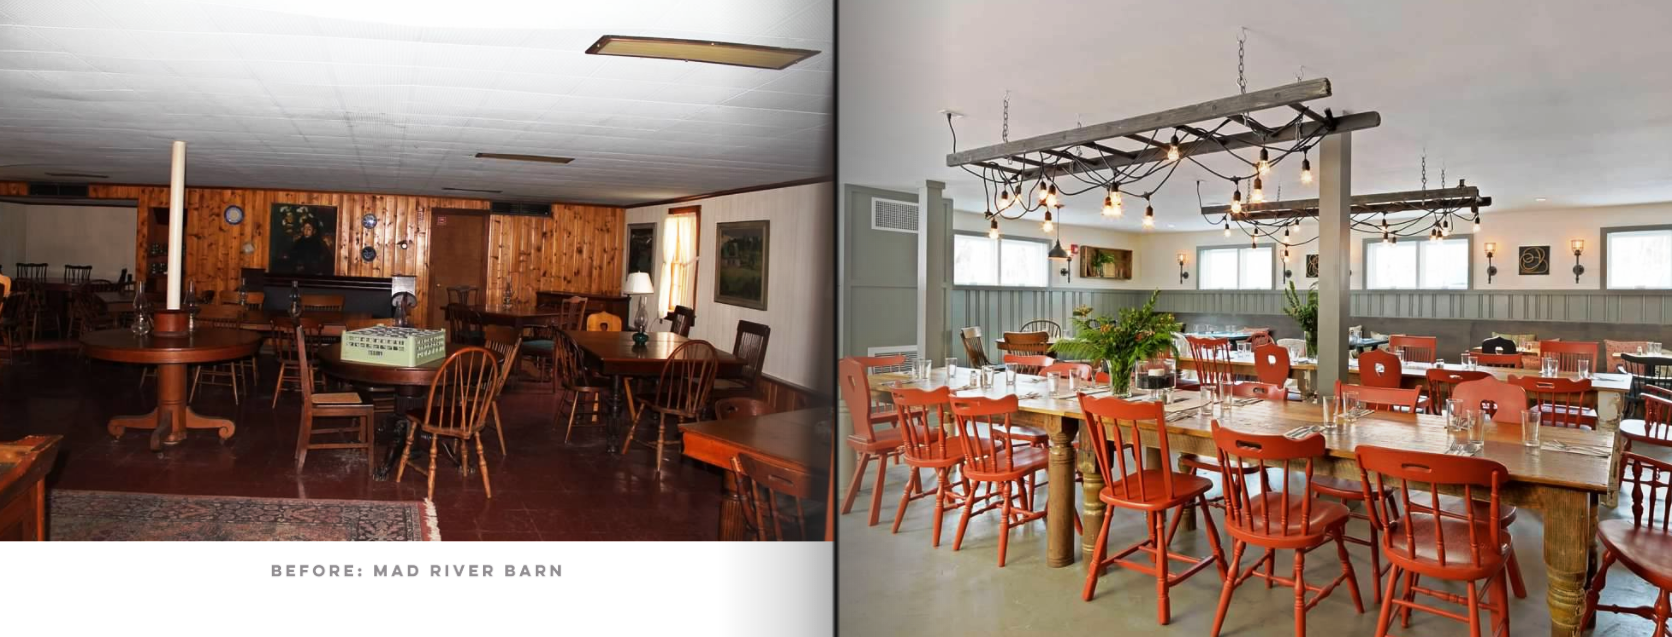 Mad River Barn Restaurant Dining Room Renovations Interior Design by Joanne Palmisano.png